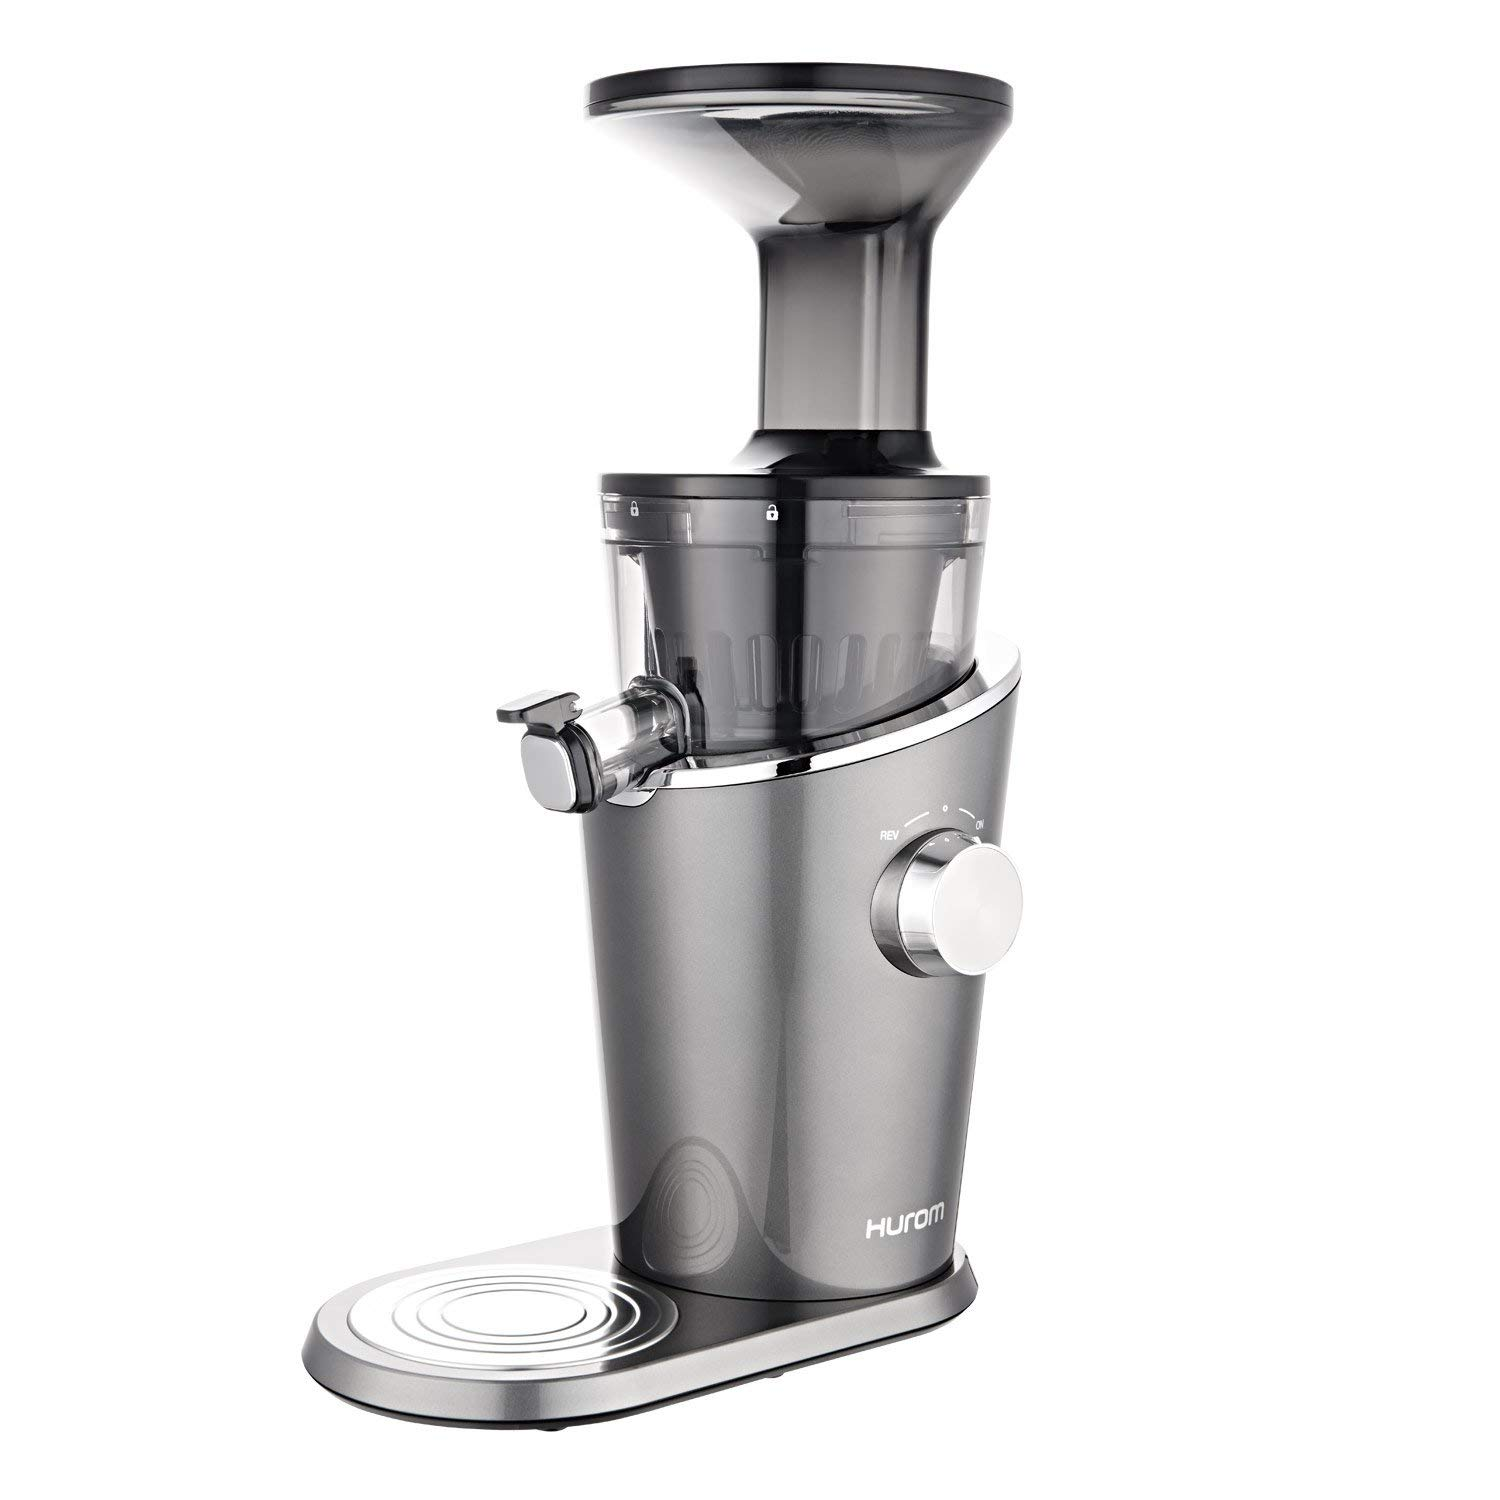 Hurom H-100-DBDA01 150-Watt Slow Juicer (Titanium Grey)